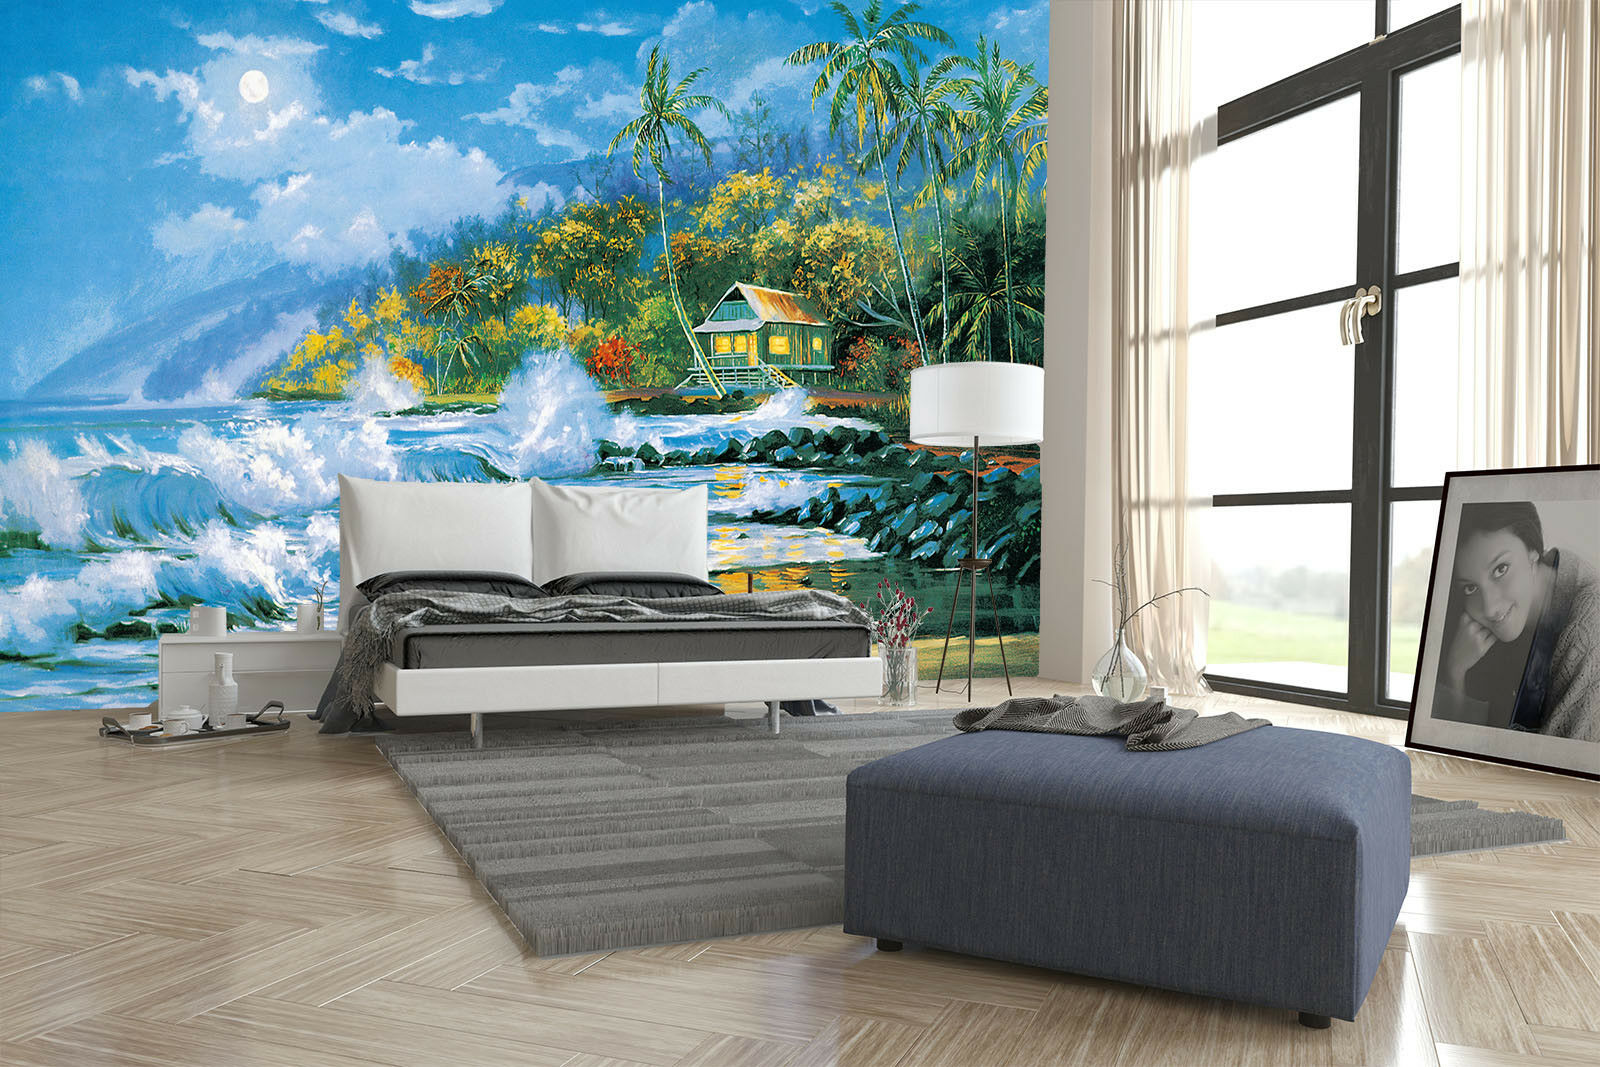 3D Surfing Beach House  45 Wall Paper Wall Print Decal Wall Deco Indoor Mural